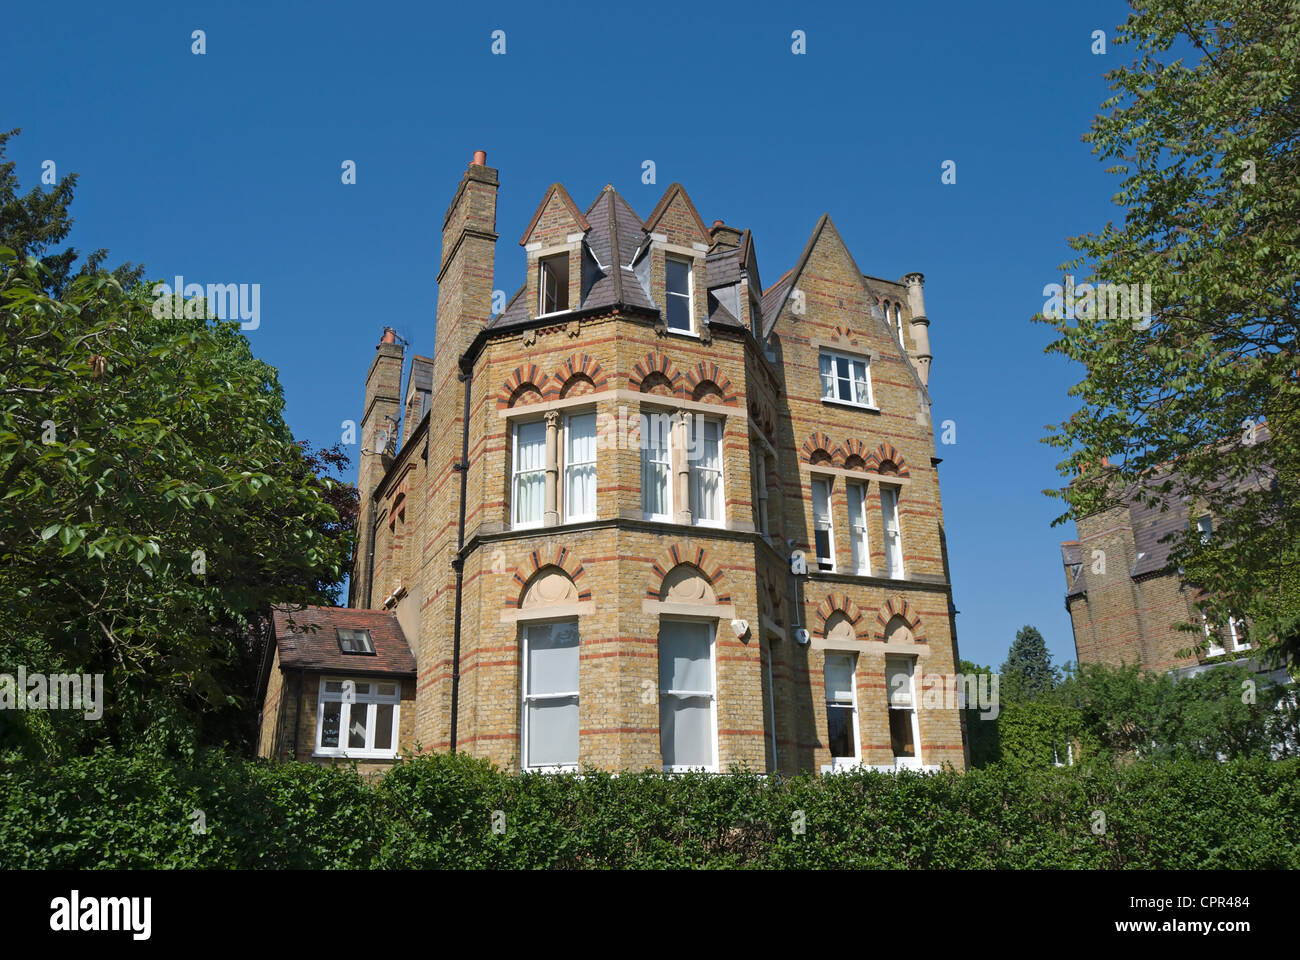 victorian detached house in gothic style, east twickenham, middlesex, england - Stock Image